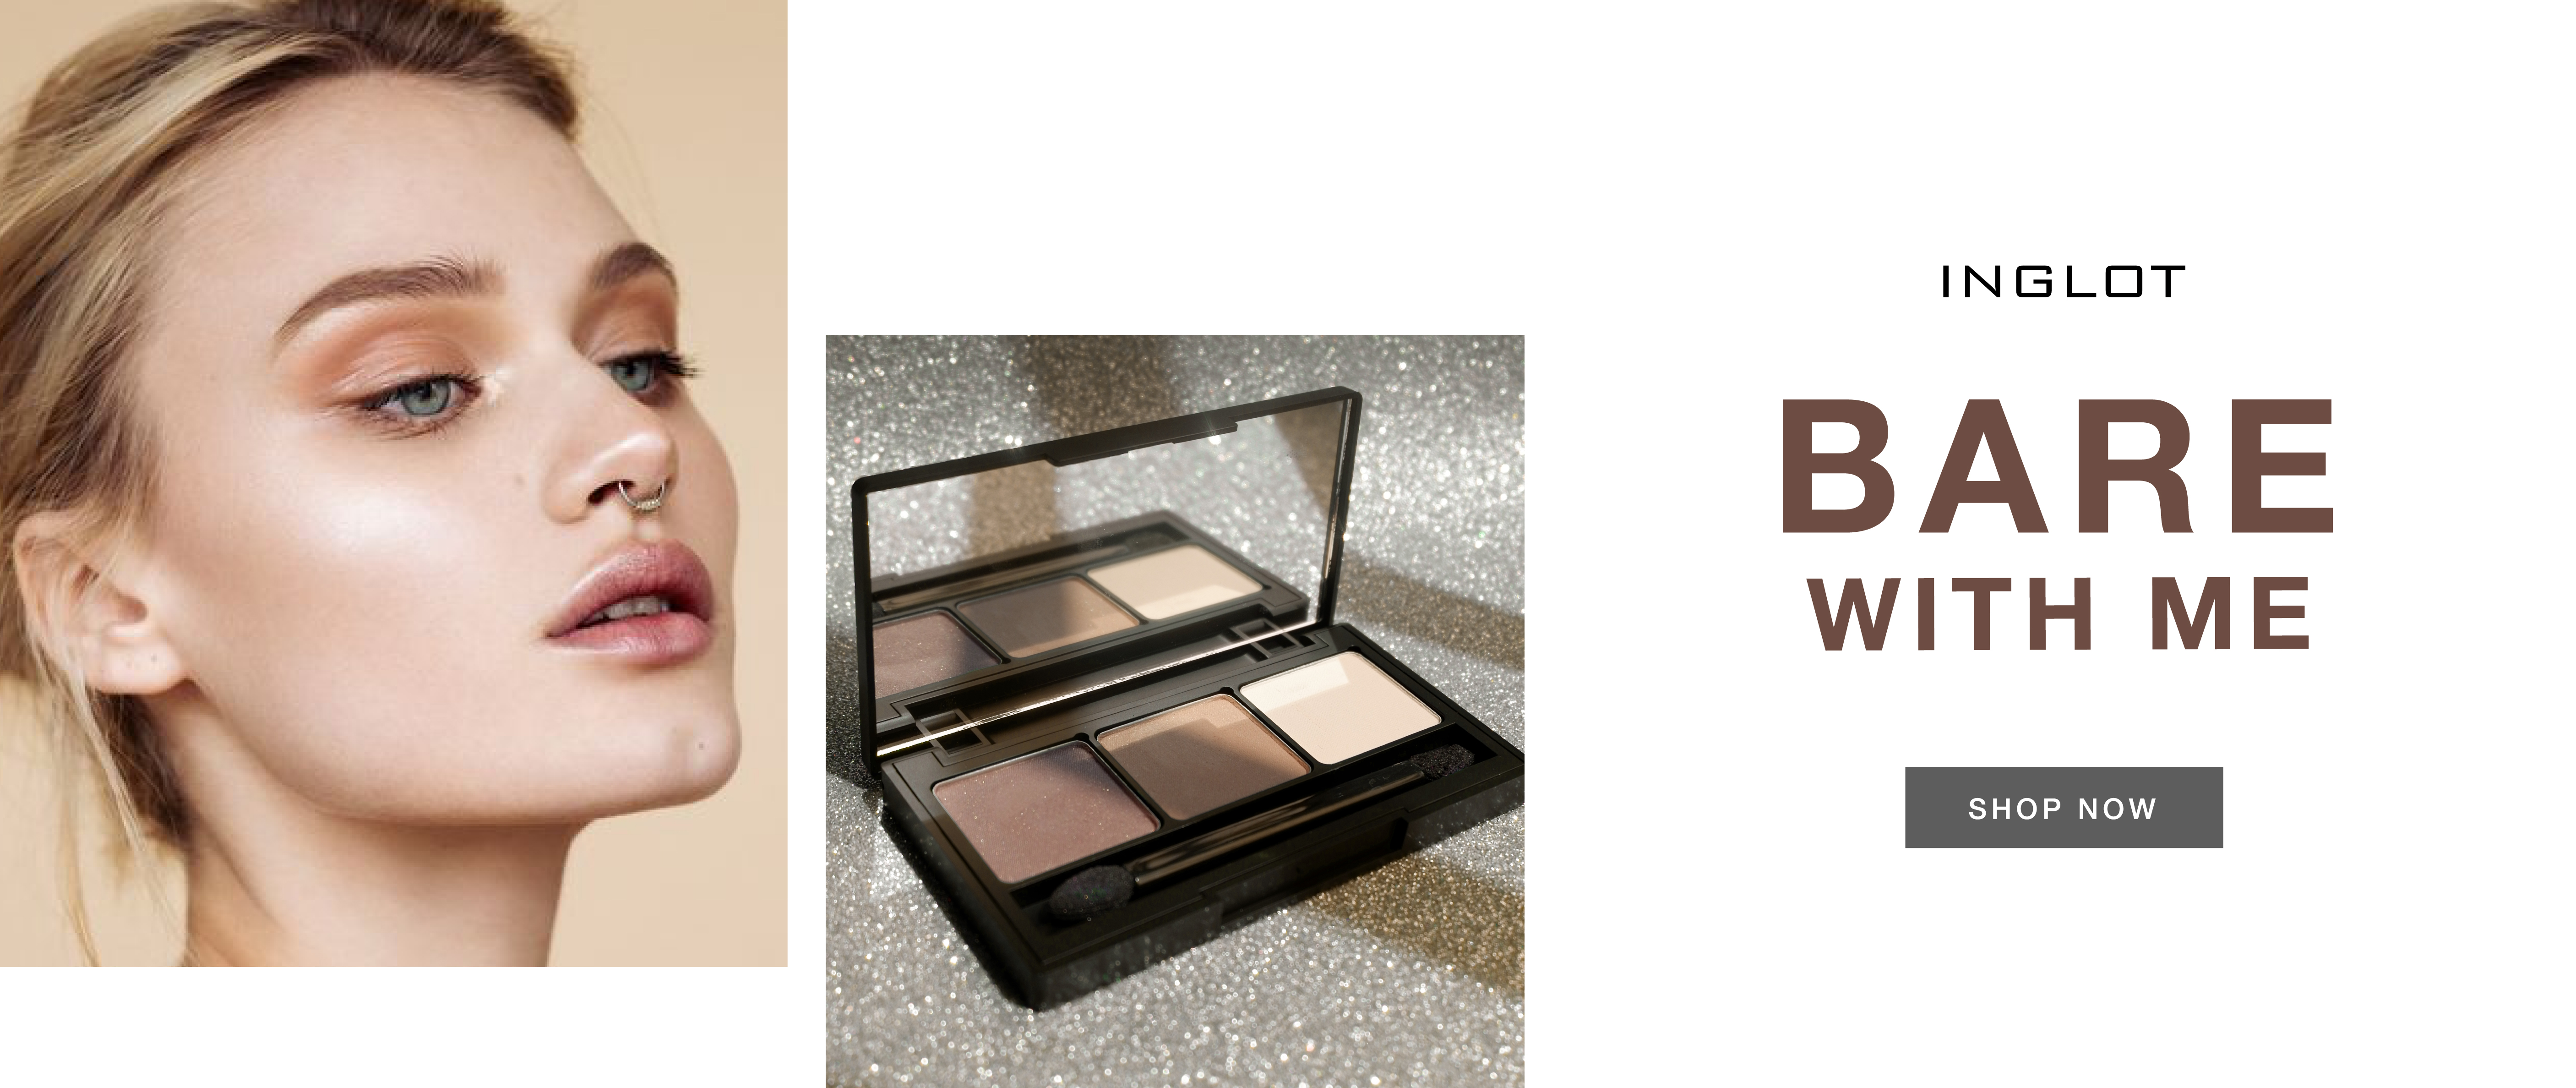 INGLOT SUMMER EYE SHADOW PALETTE BARE WITH ME